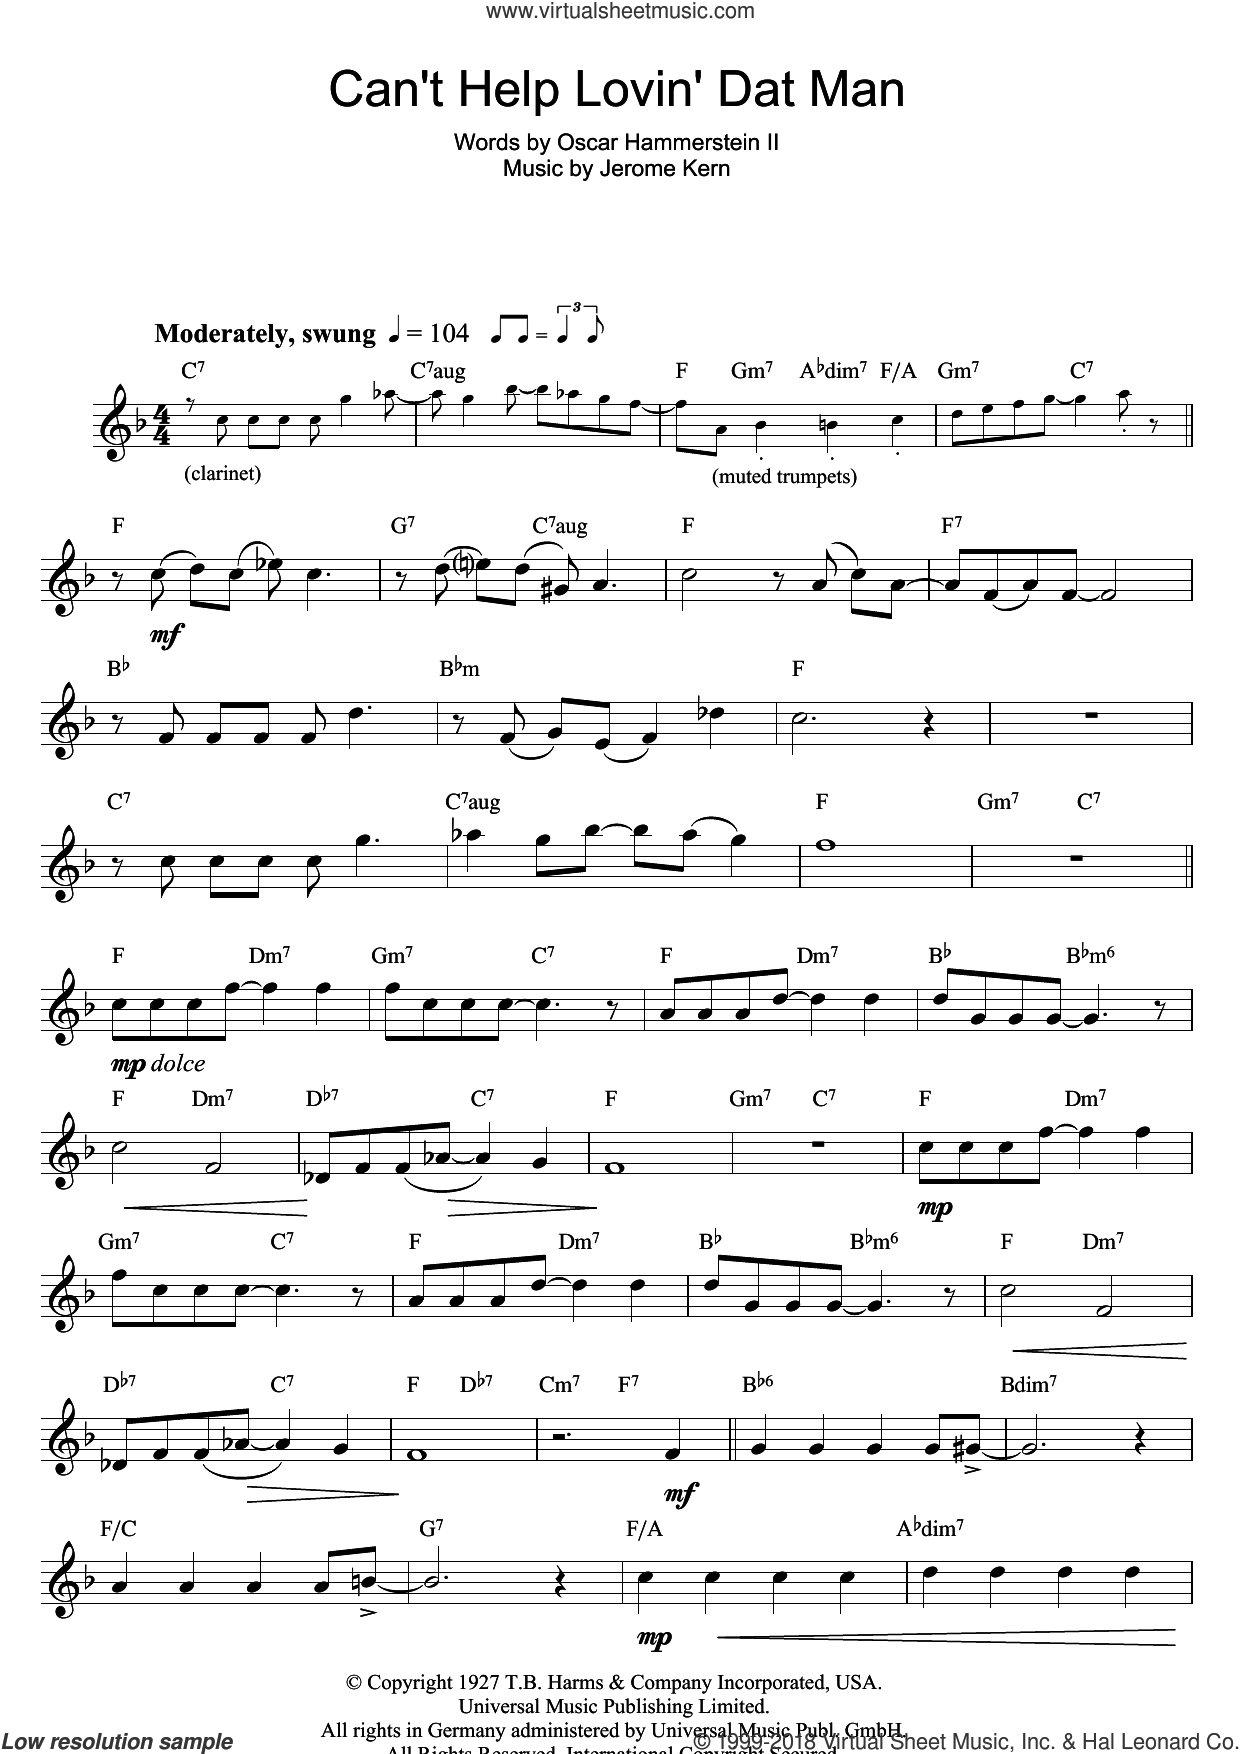 Can't Help Lovin' Dat Man sheet music for flute solo by Jerome Kern and Oscar II Hammerstein, intermediate skill level